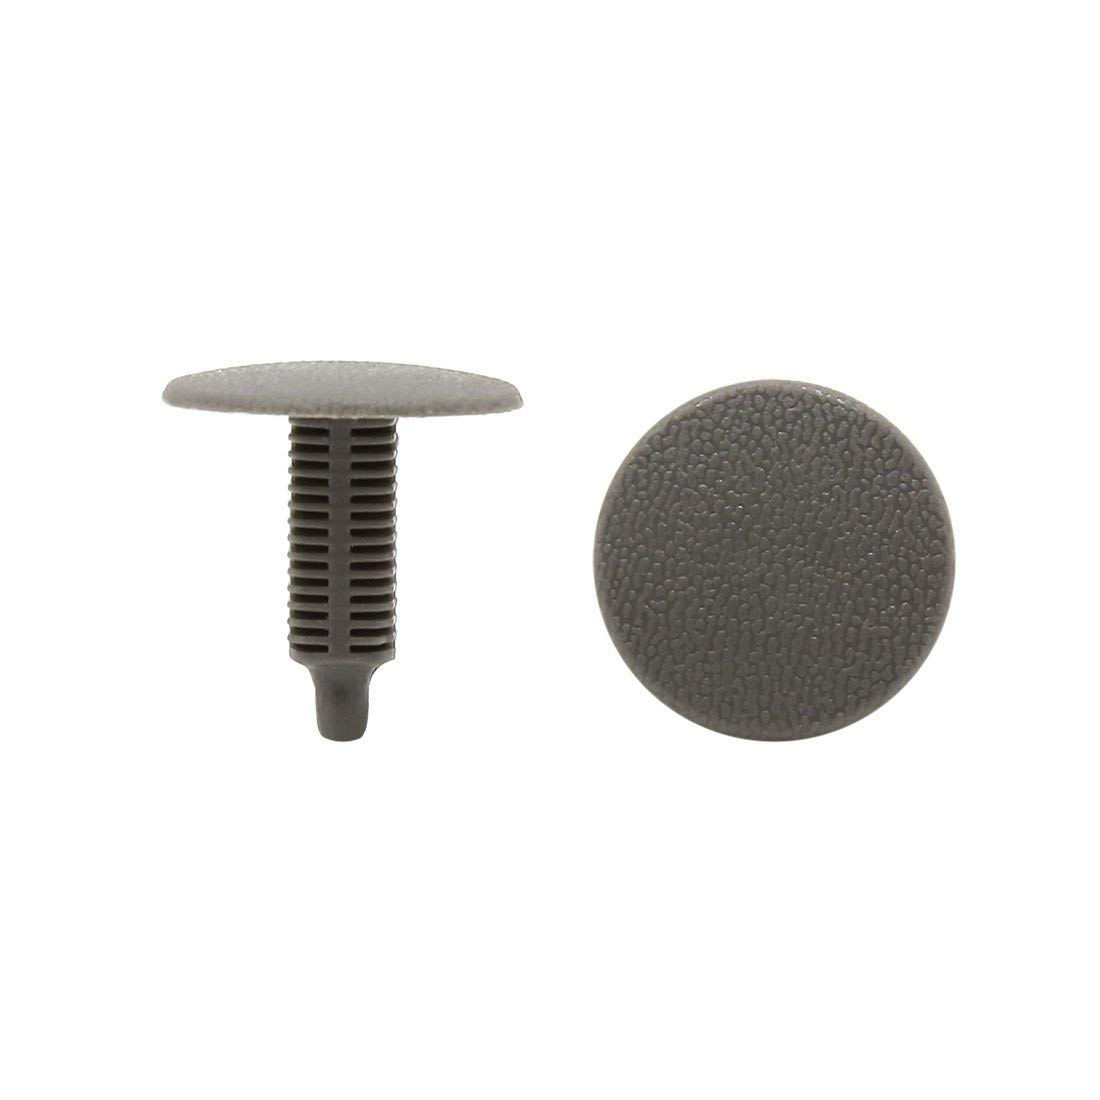 uxcell 30 x Rivets Fastener Fender Bumper Pin Clips 7.5mm